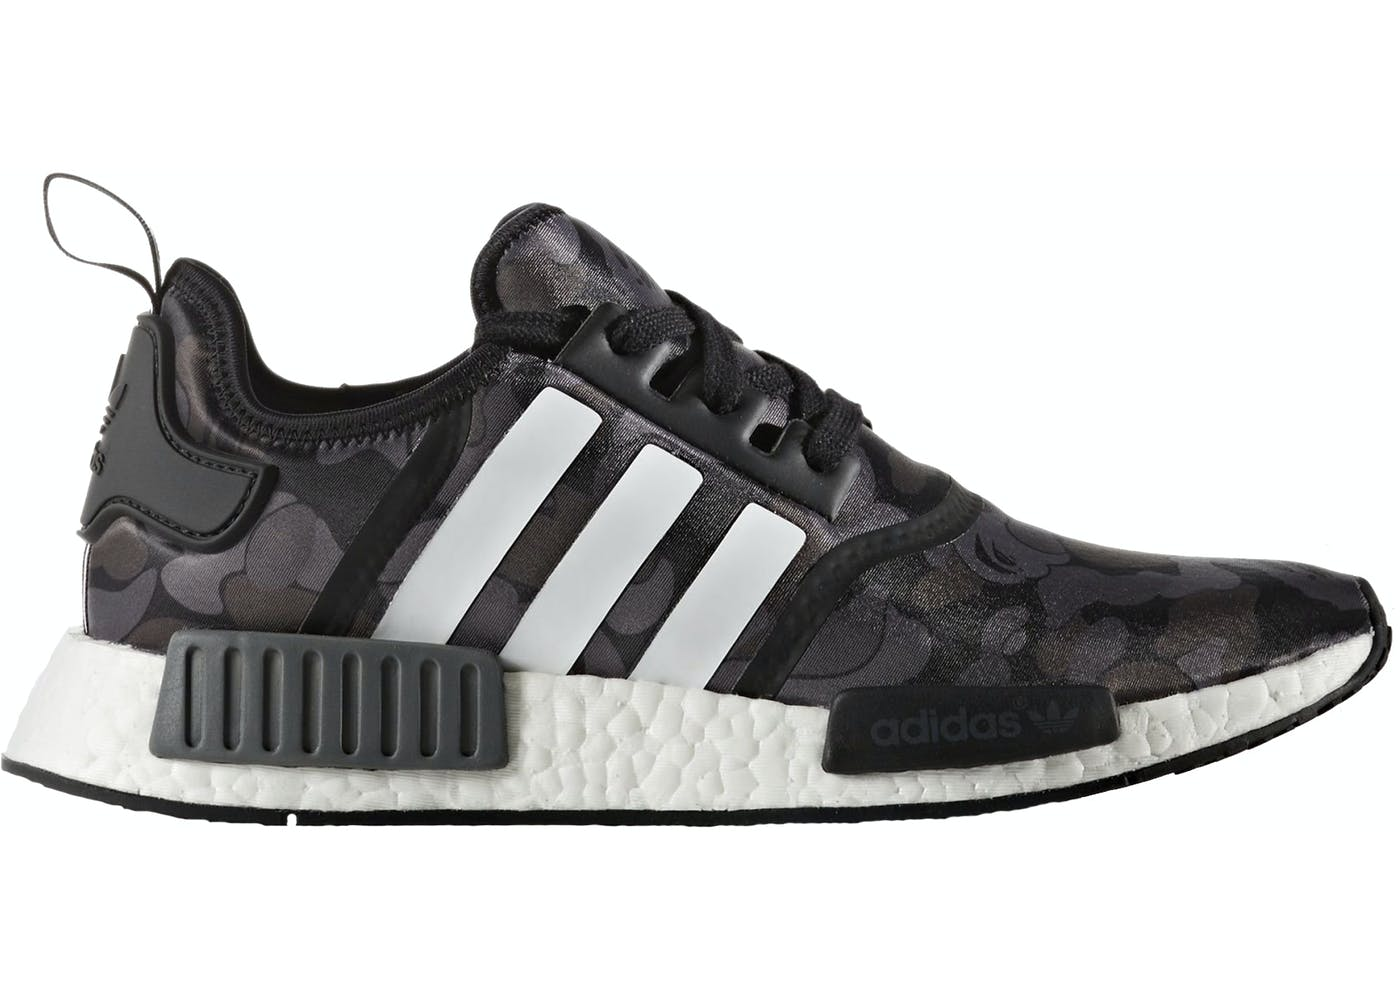 Cheap NMD R1 Shoes for Sale, Buy Cheap Adidas NMD R1 Boost